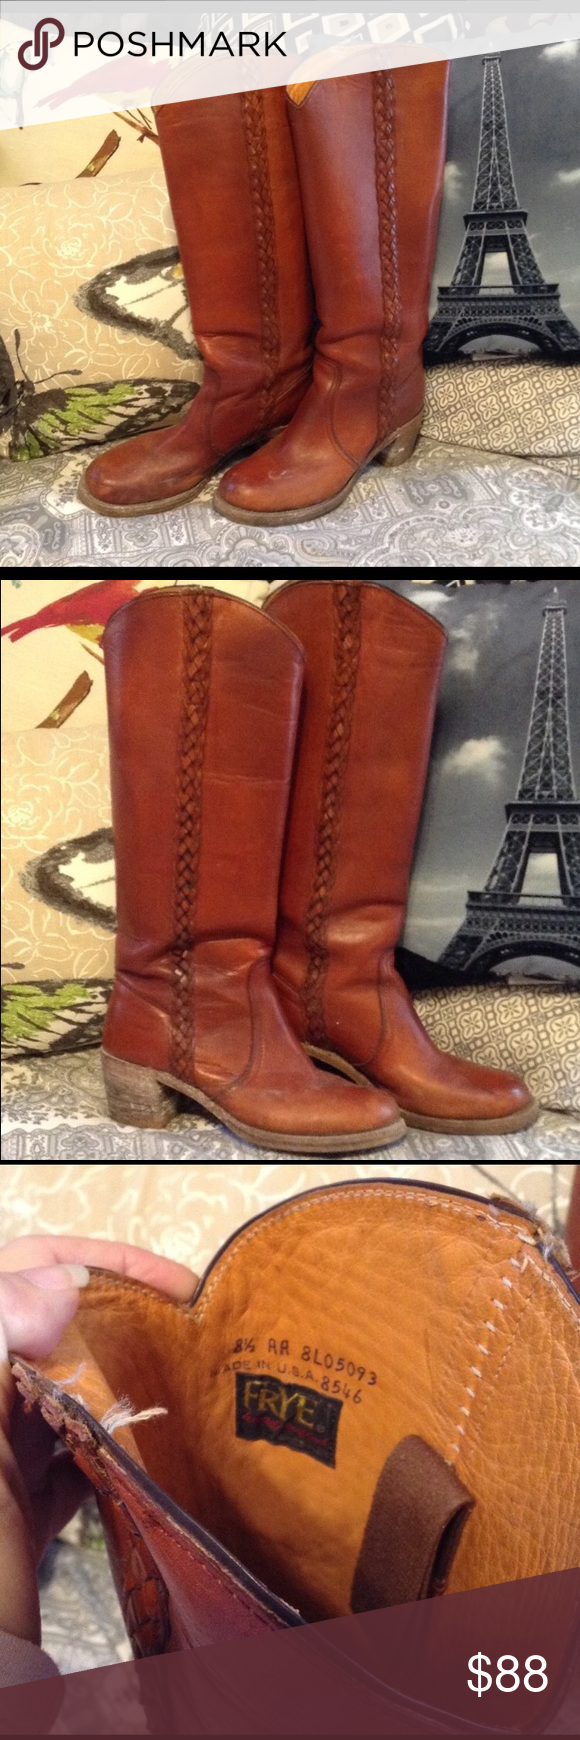 Frye Boots Tall leather boots with braiding detail in deep cognac caramel color. They need to be cleaned but are in fantastic shape. Frye Shoes Winter & Rain Boots